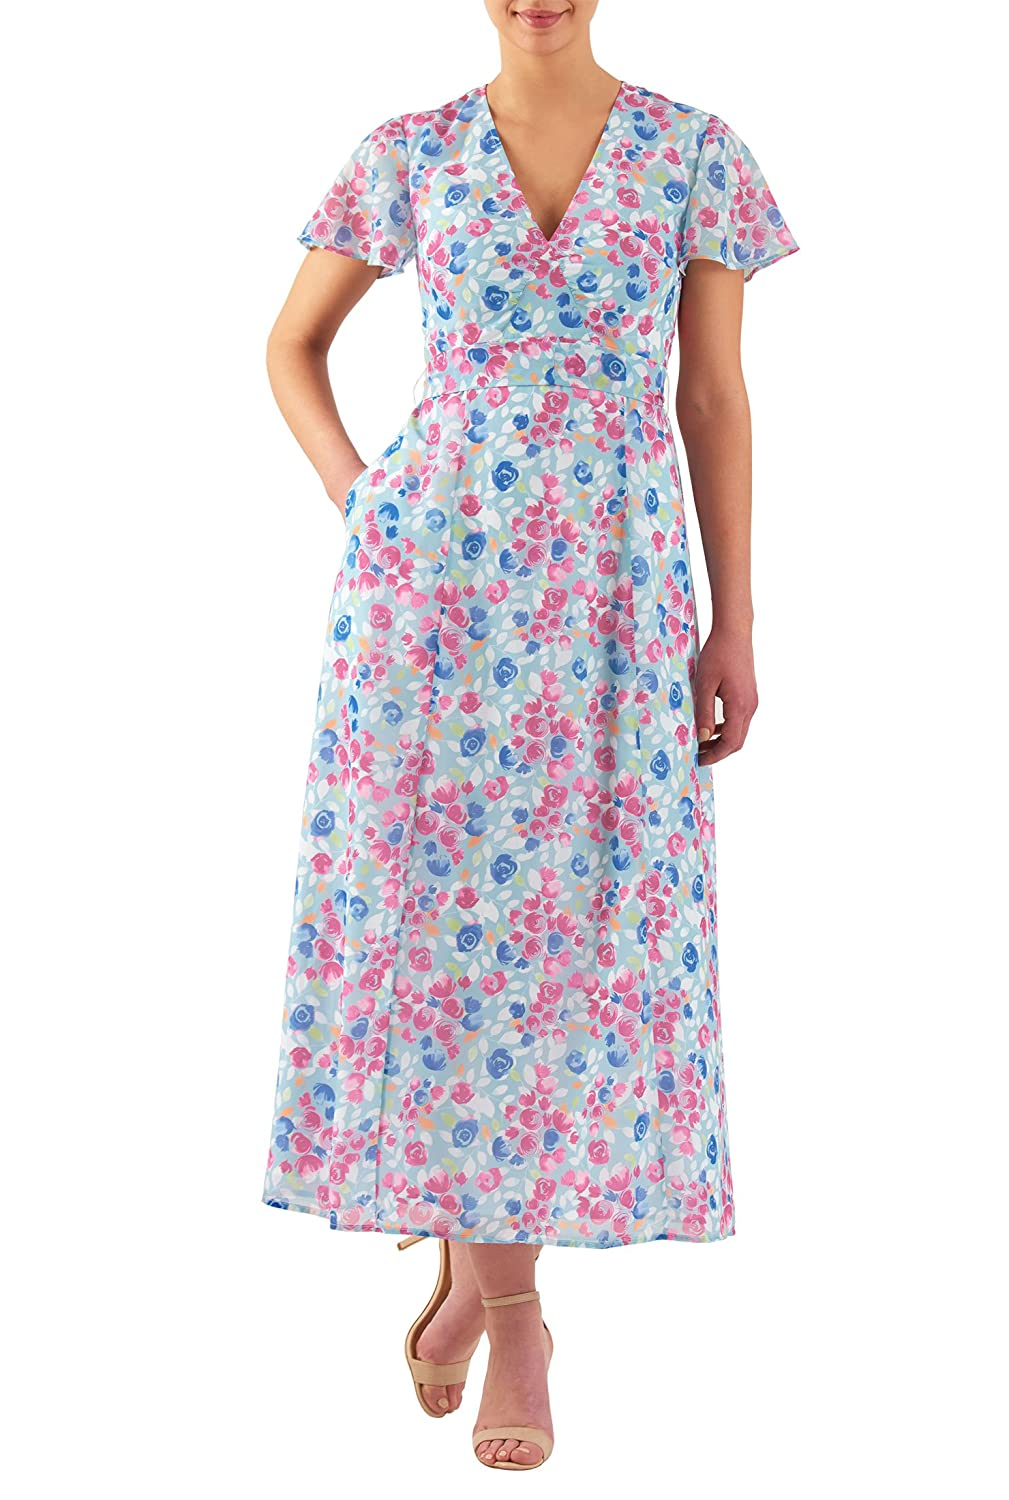 1930s Day Dresses, Afternoon Dresses History eShakti Womens Floral print georgette empire maxi dress $56.95 AT vintagedancer.com